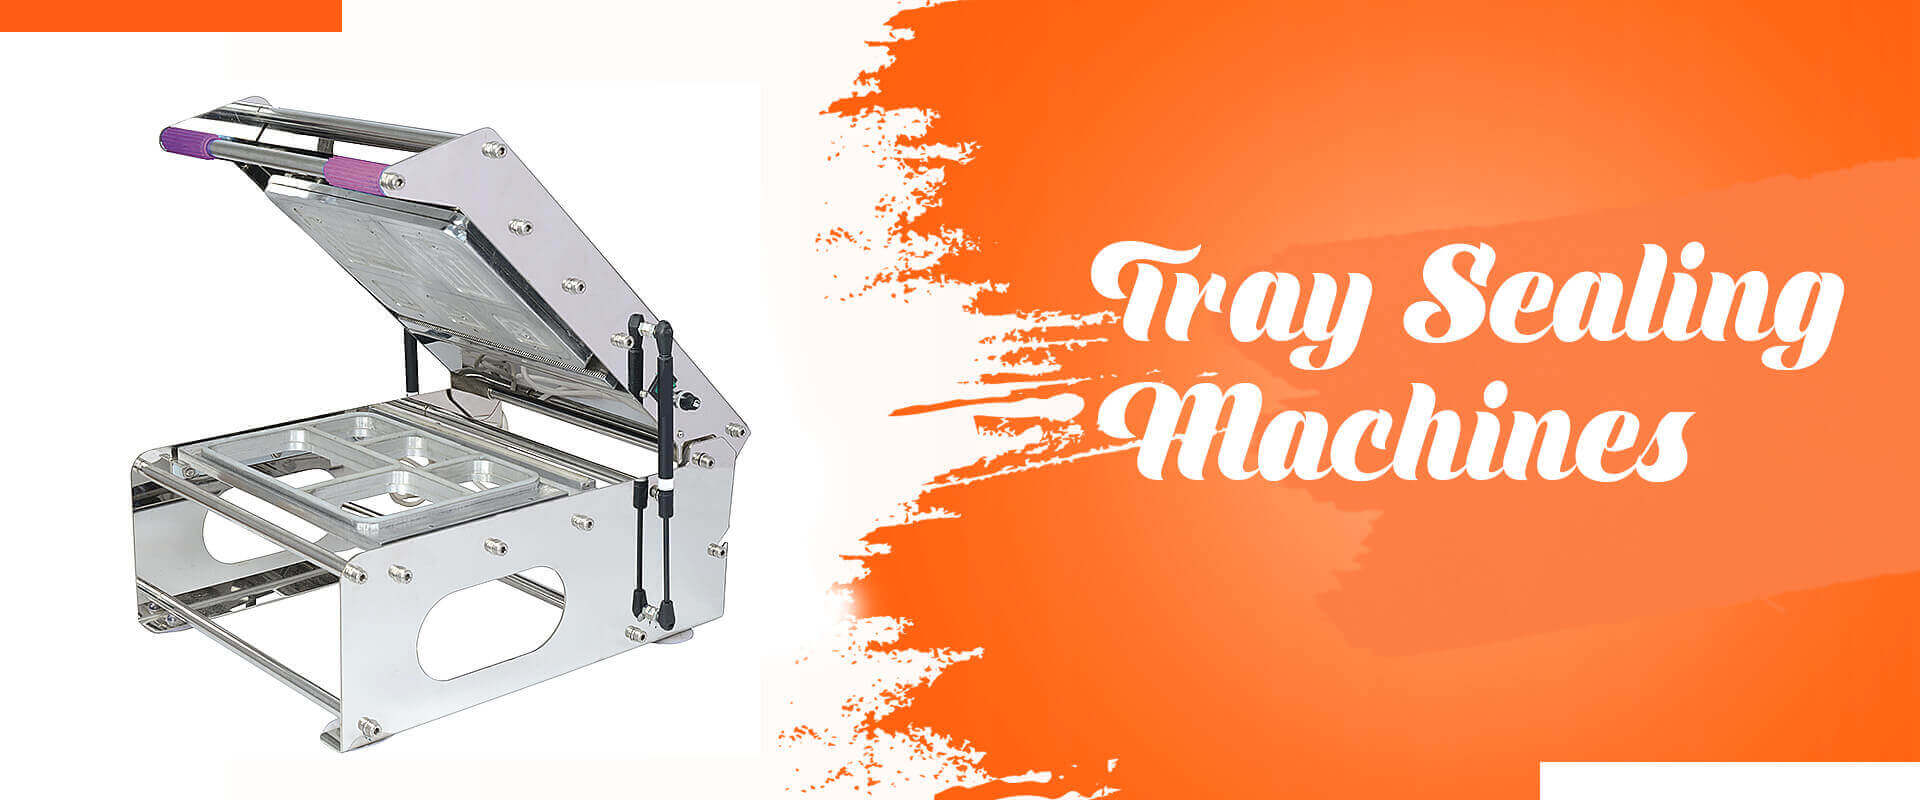 Tray Sealing Machines In Manipur